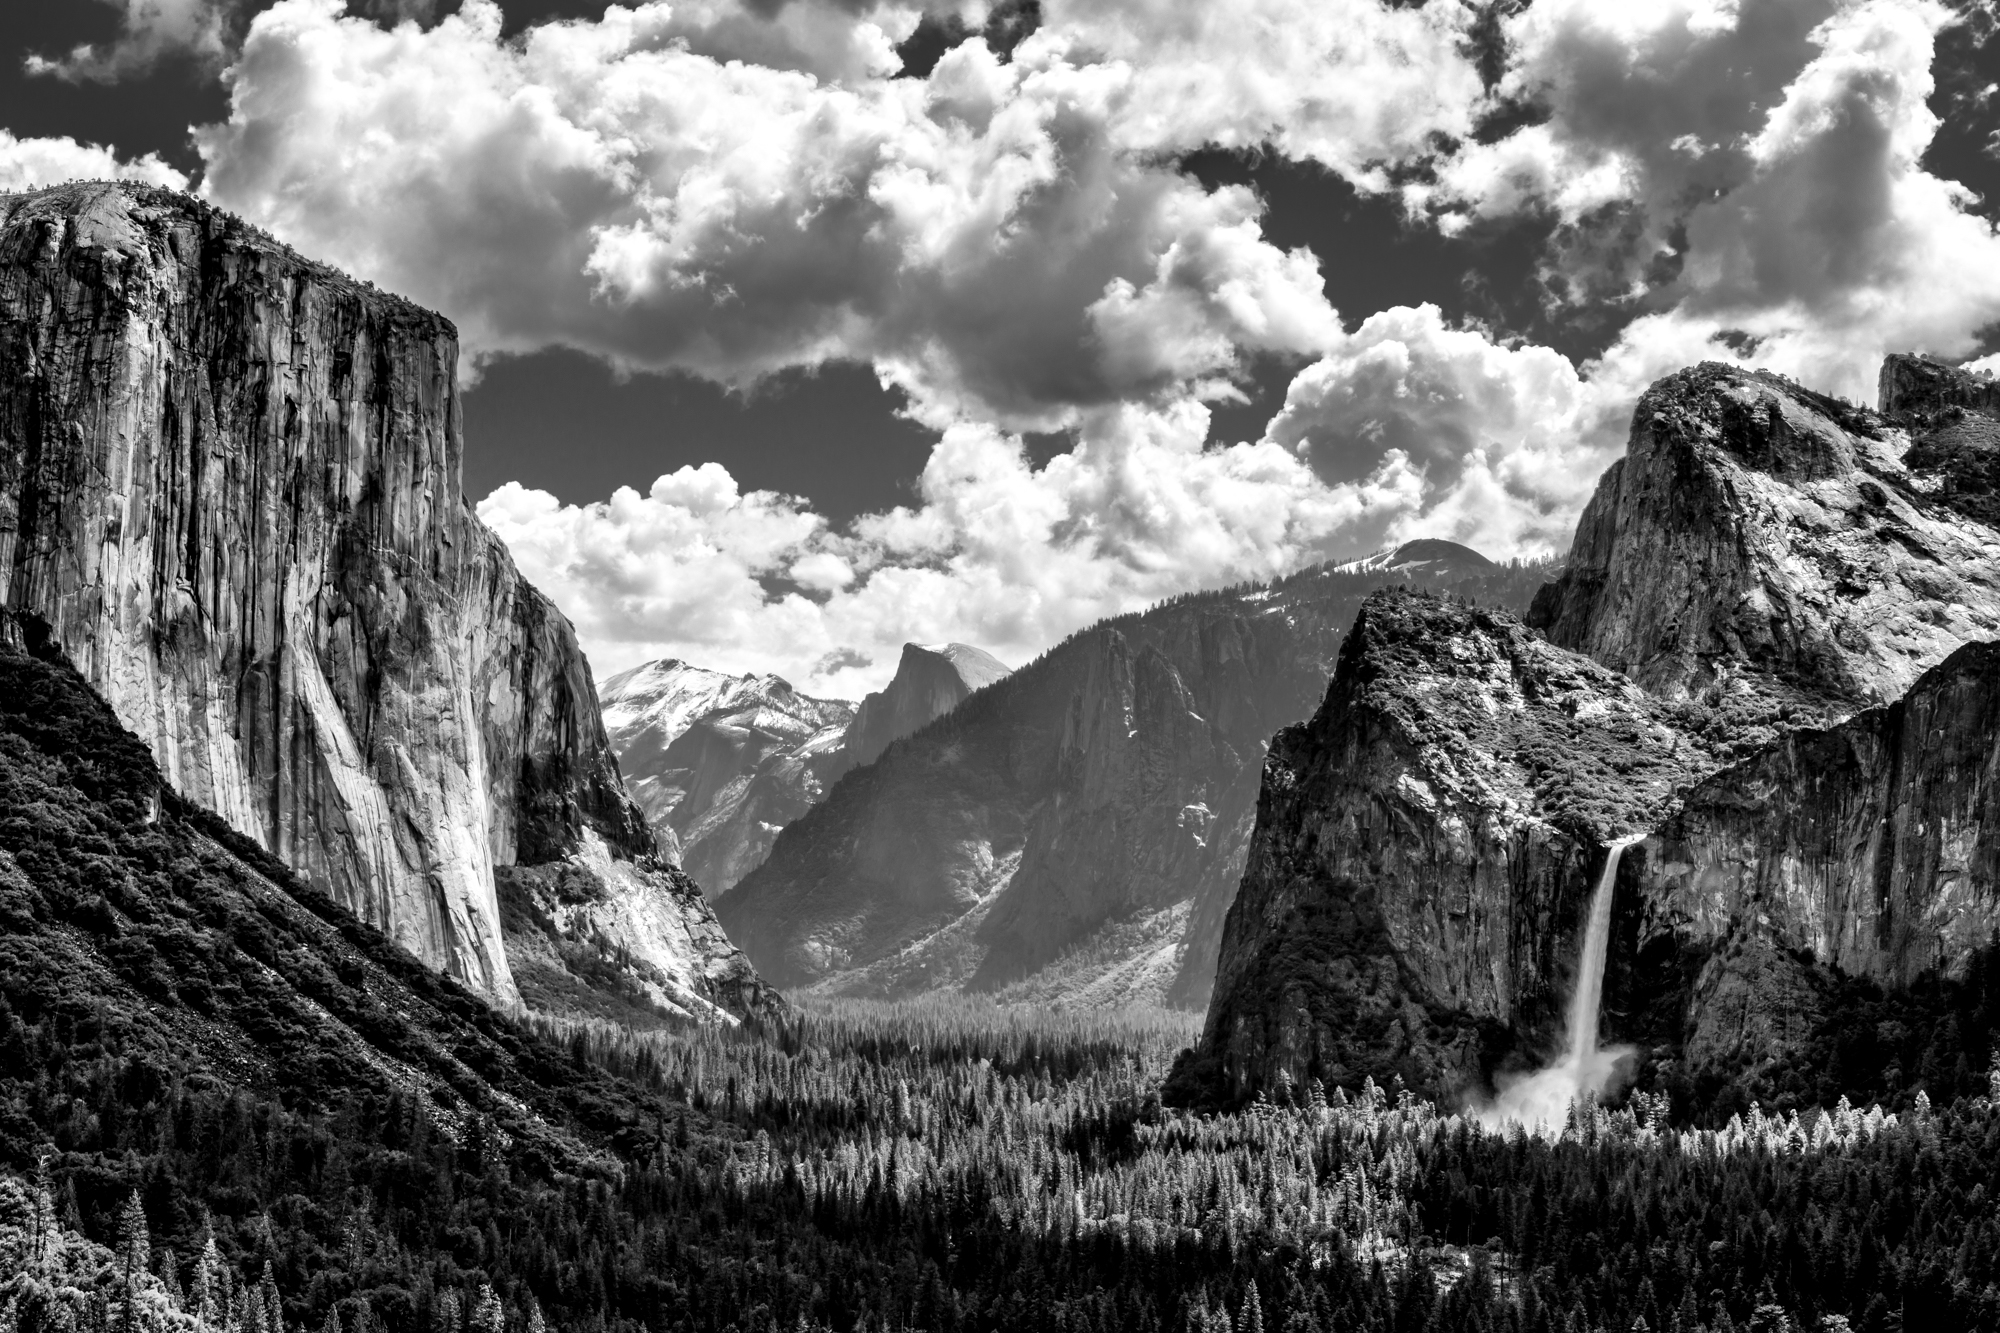 After visiting this spot so many times, this was one the best times I've seen the light falling so perfectly on El Capitan on the left and Bridal Falls on the right. I also love the big booming clouds and how you can see Half Dome in the background with a little covering of snow. There is a reason this spot is known as Inspiration Point!! This photo is going to look awesome printed out huge.